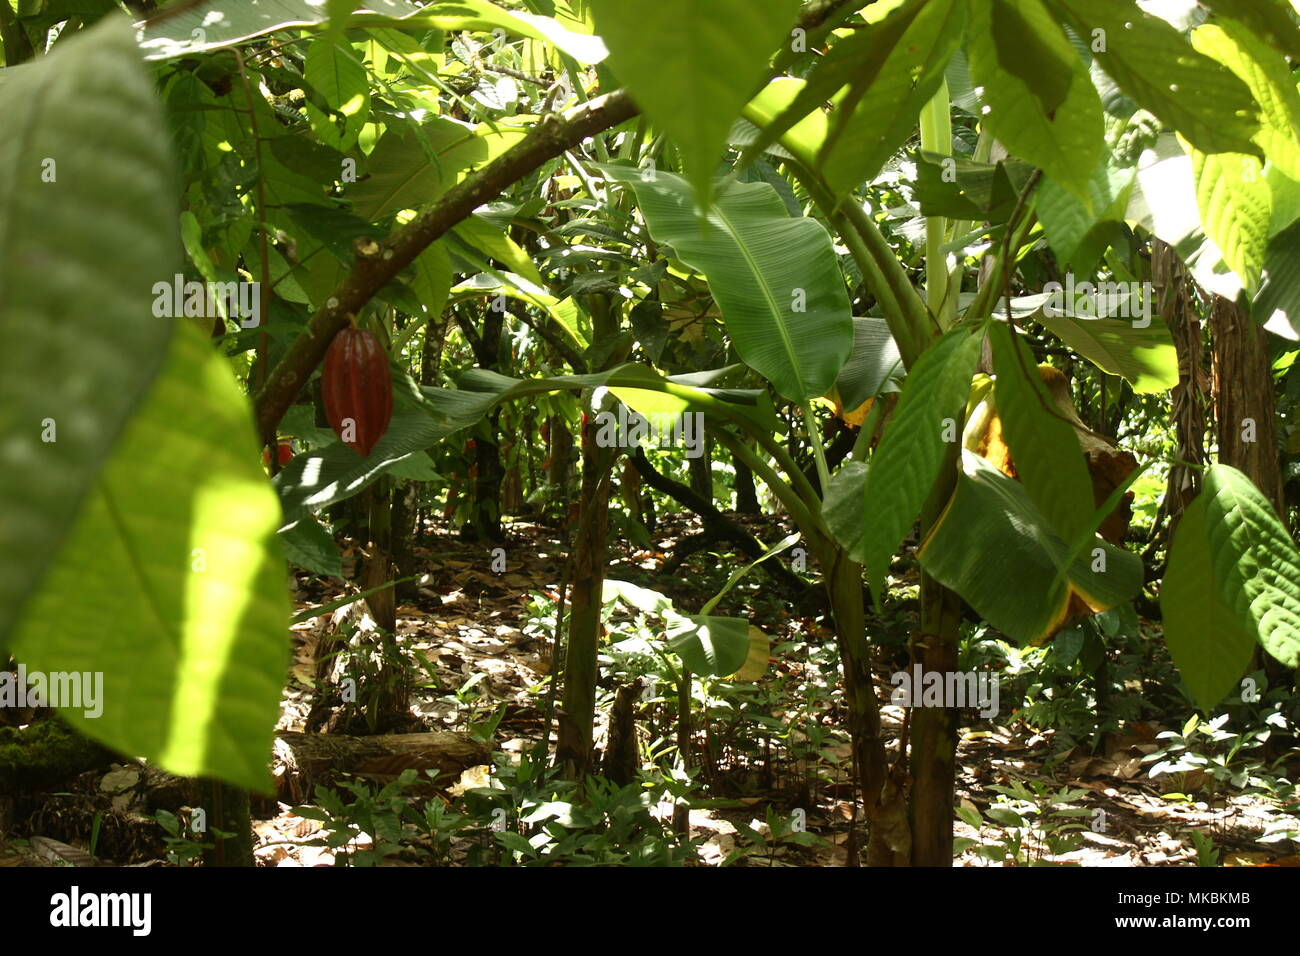 leafs of cacao trees - Stock Image